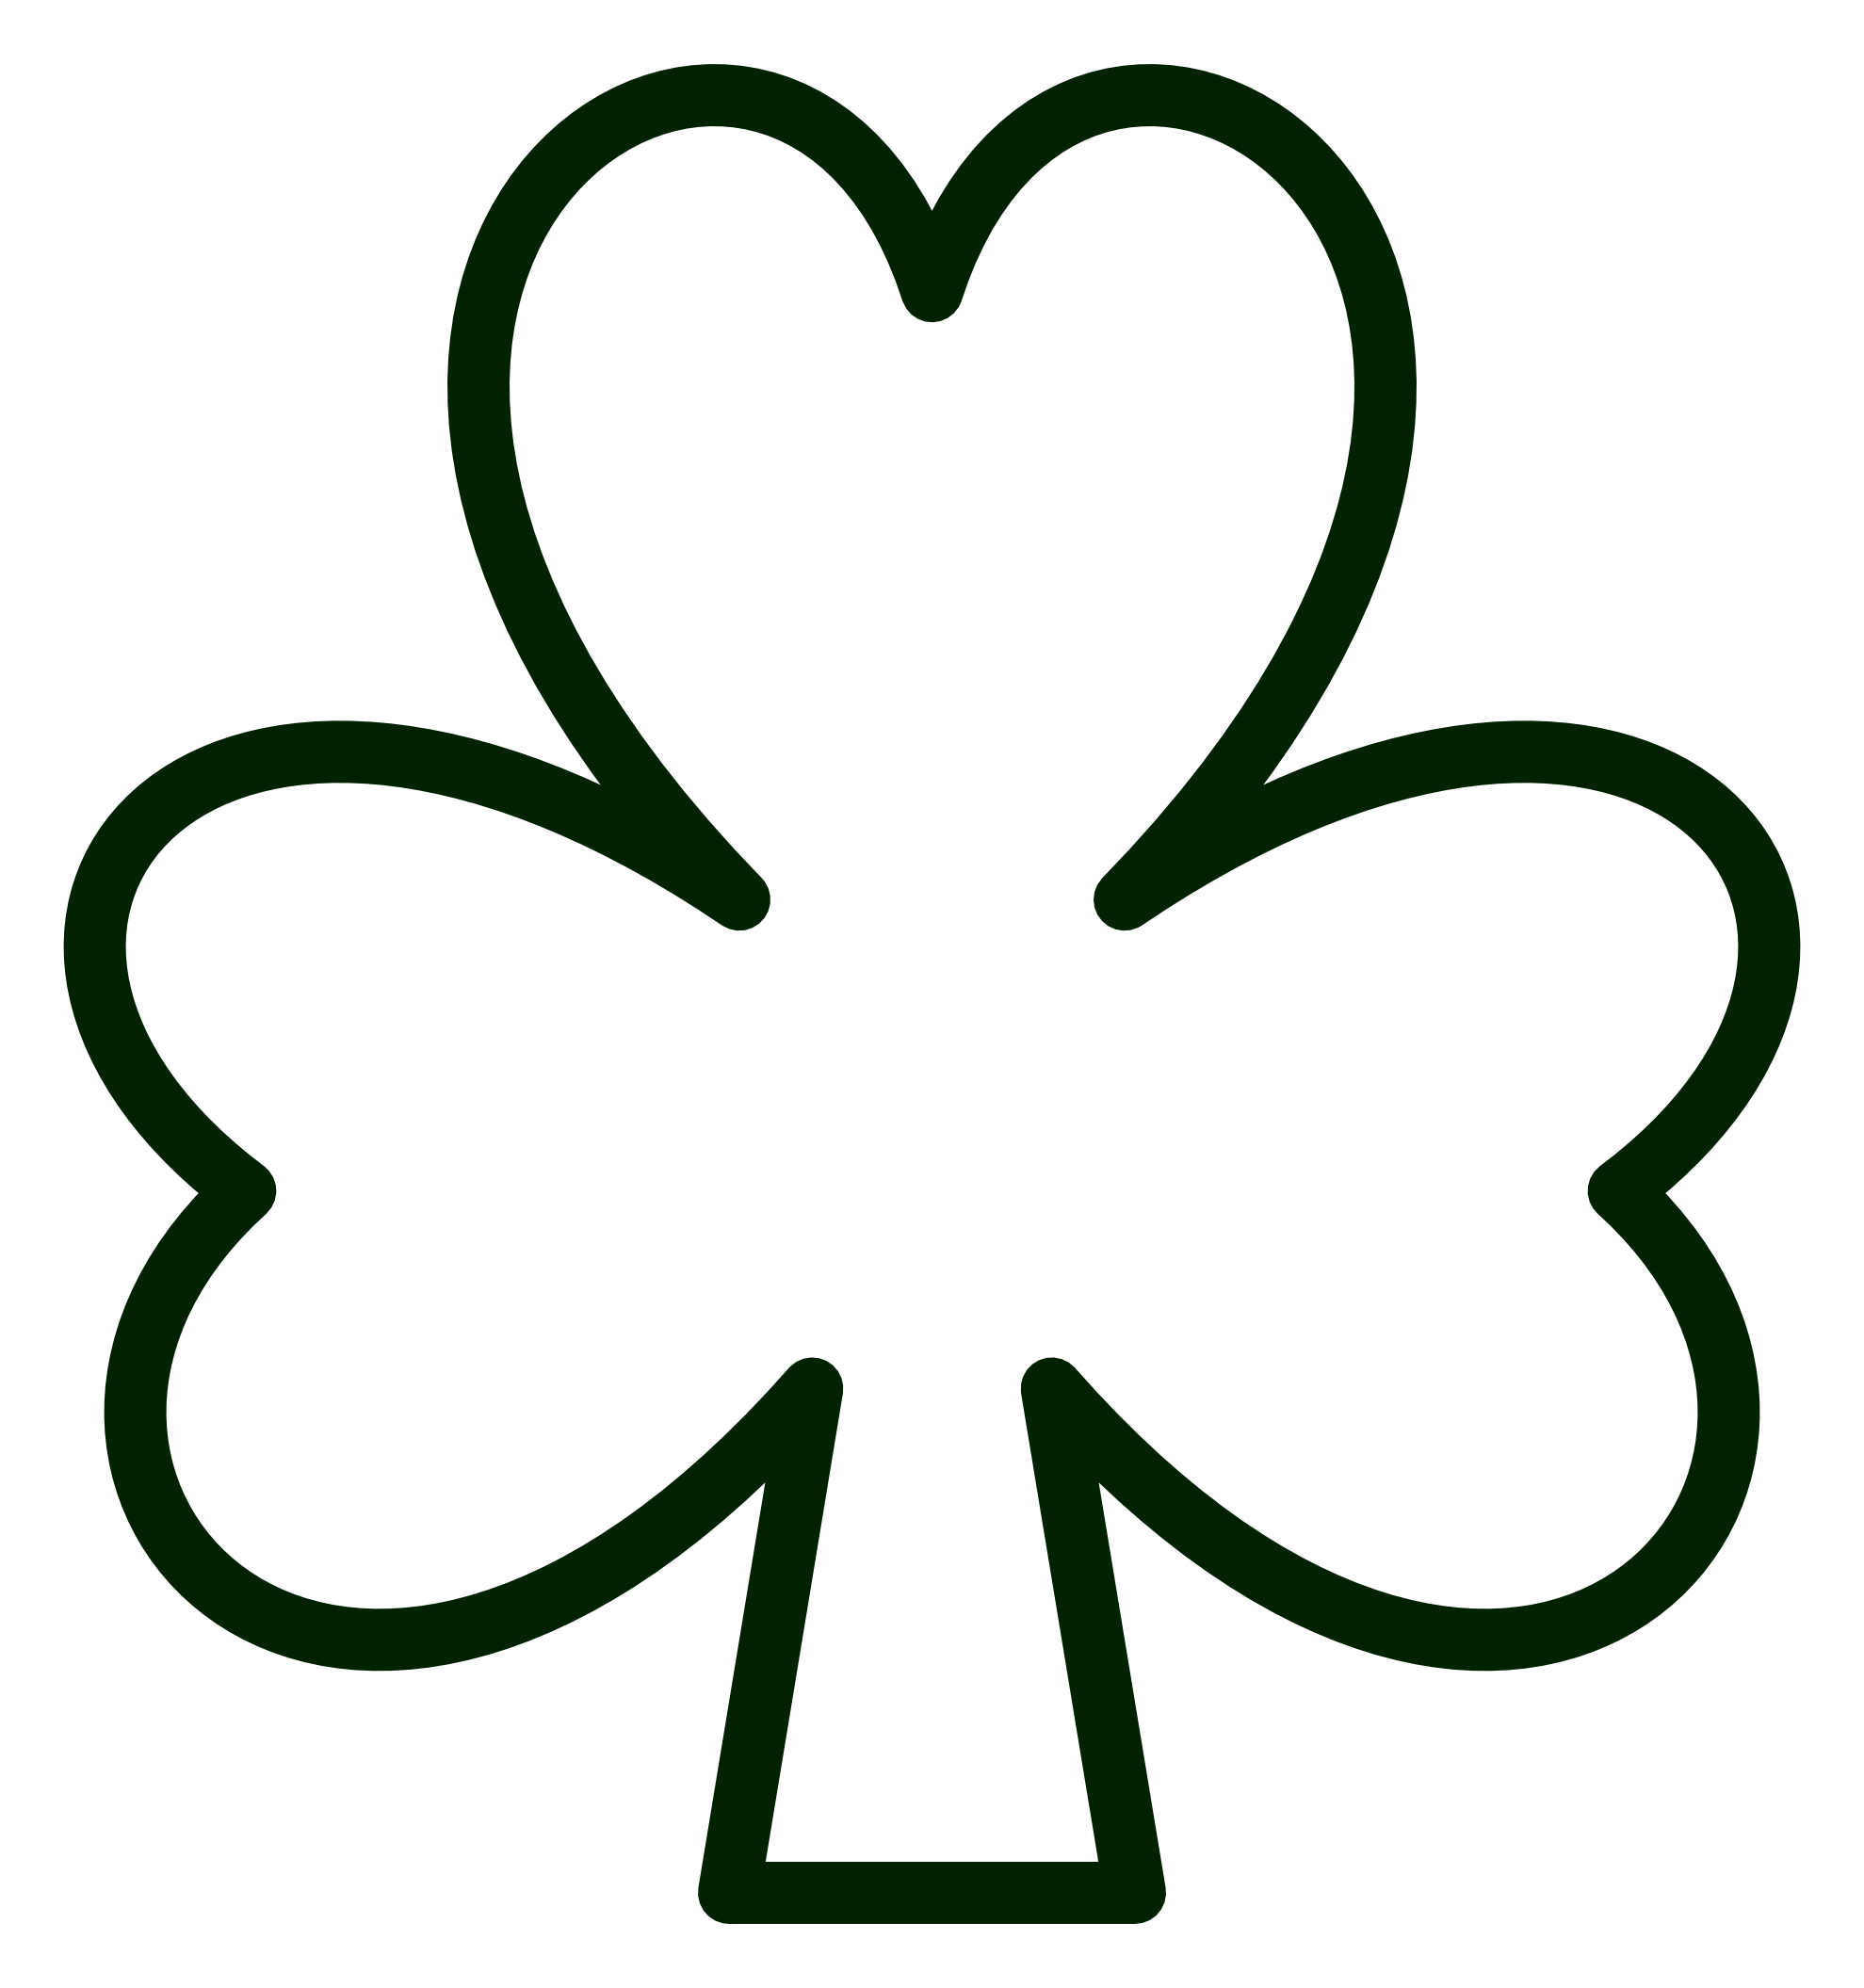 graphic about Printable Shamrock Templates named shamrock define clipart Quilt blocks Shamrock template